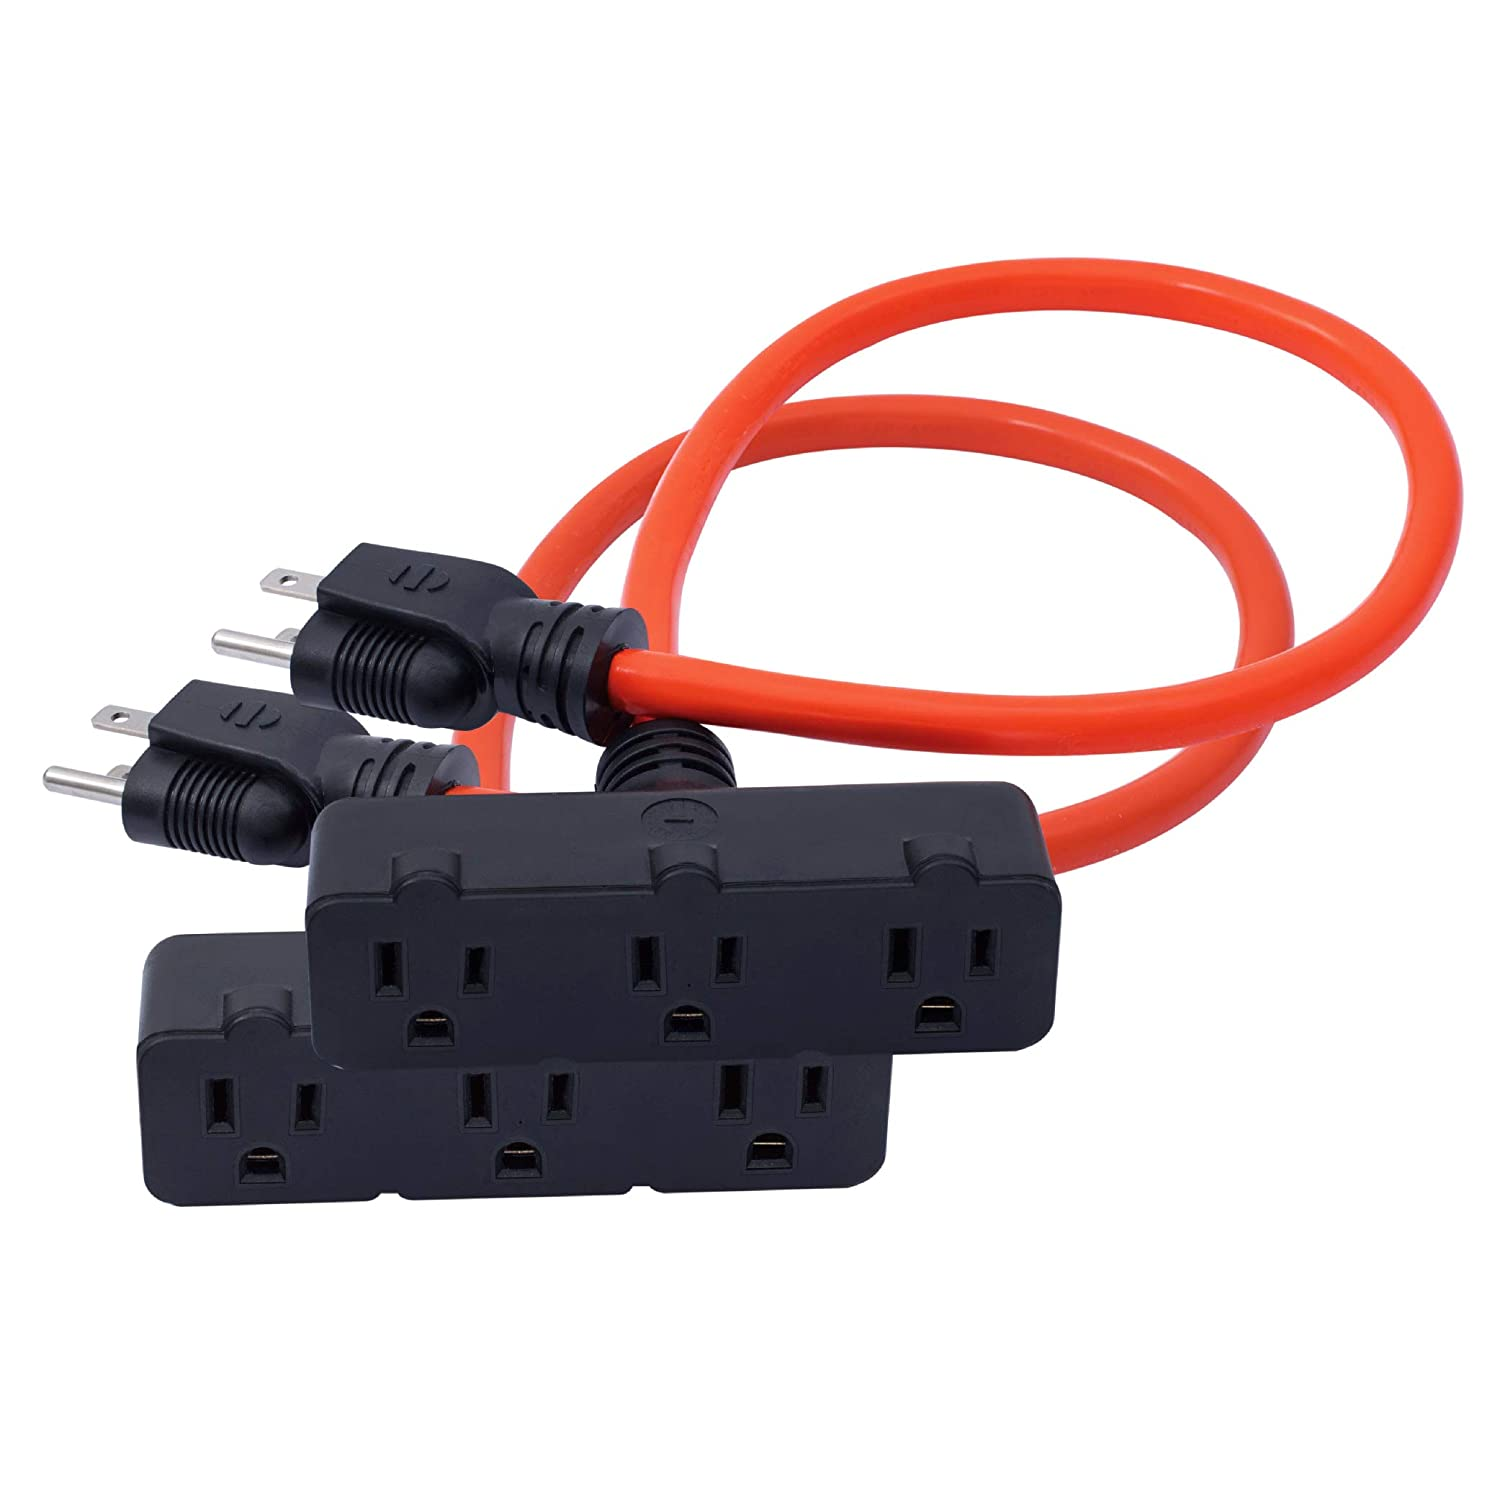 KMC 3-Outlet Power Extension Cord 2-Pack, 12AWG 2-Feet Extension Cord, 125V/15Amp 1875Watt, Orange